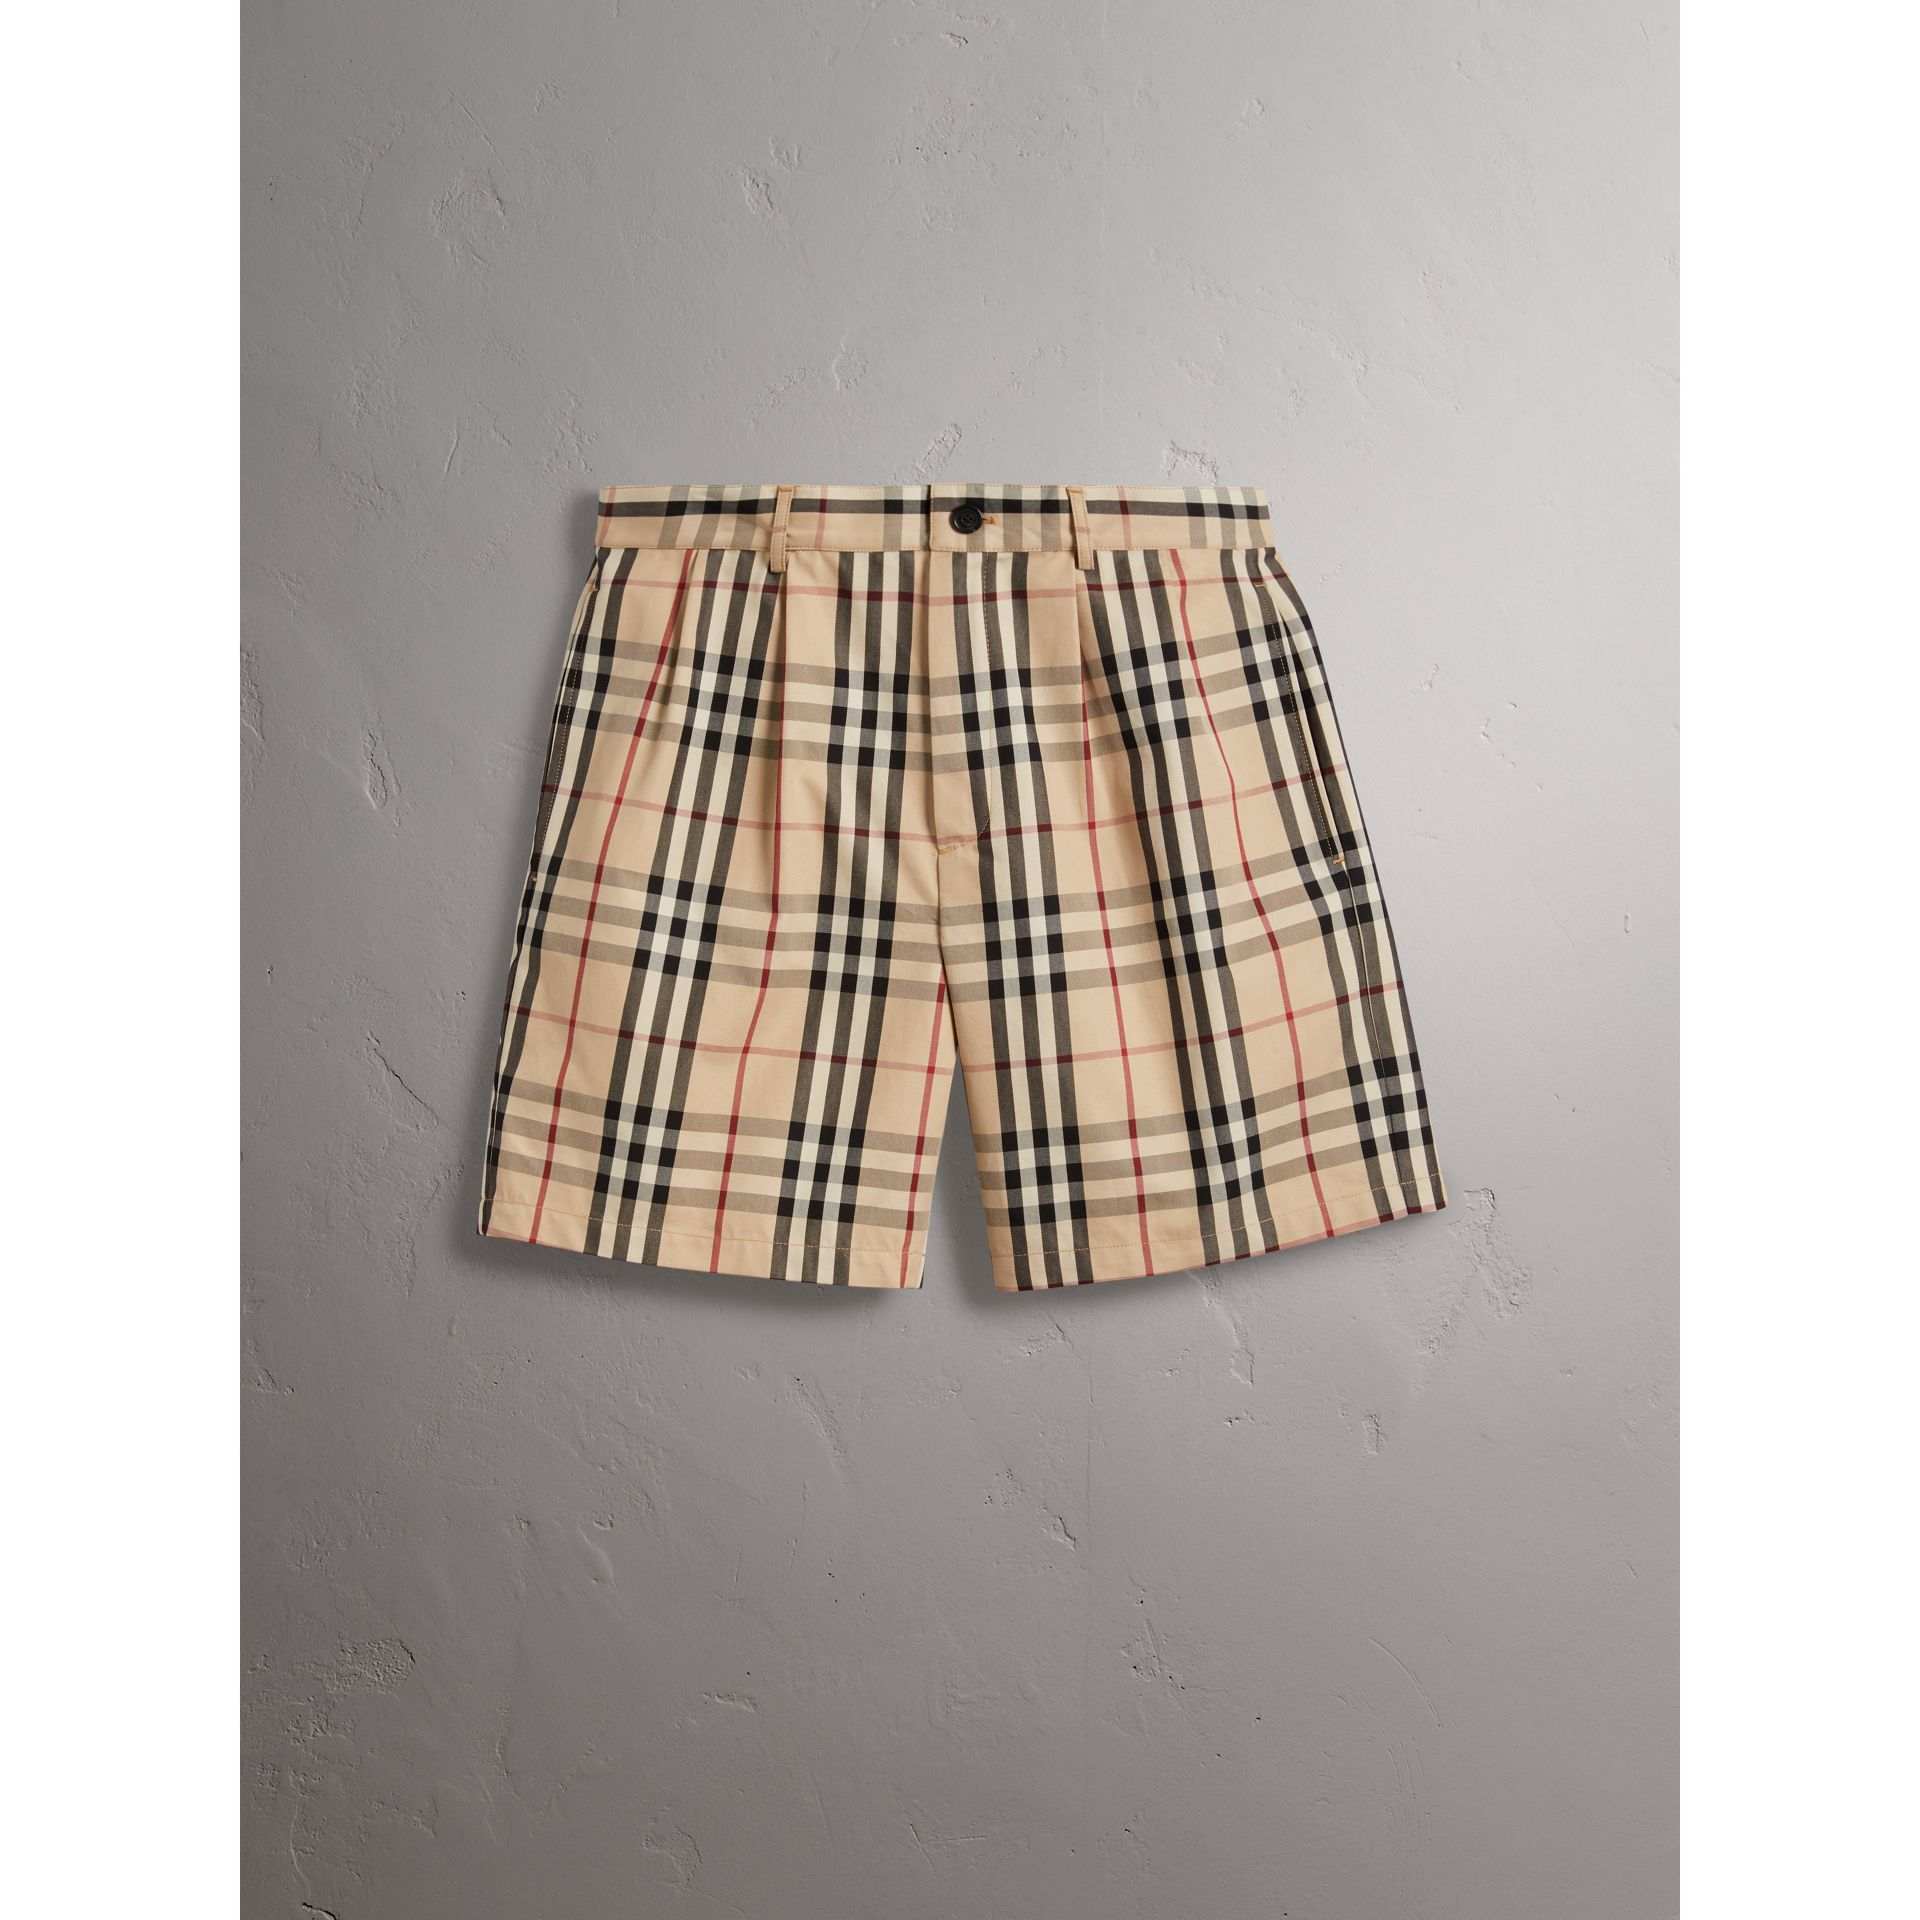 Gosha x Burberry Tailored Shorts in Honey | Burberry United States - gallery image 4